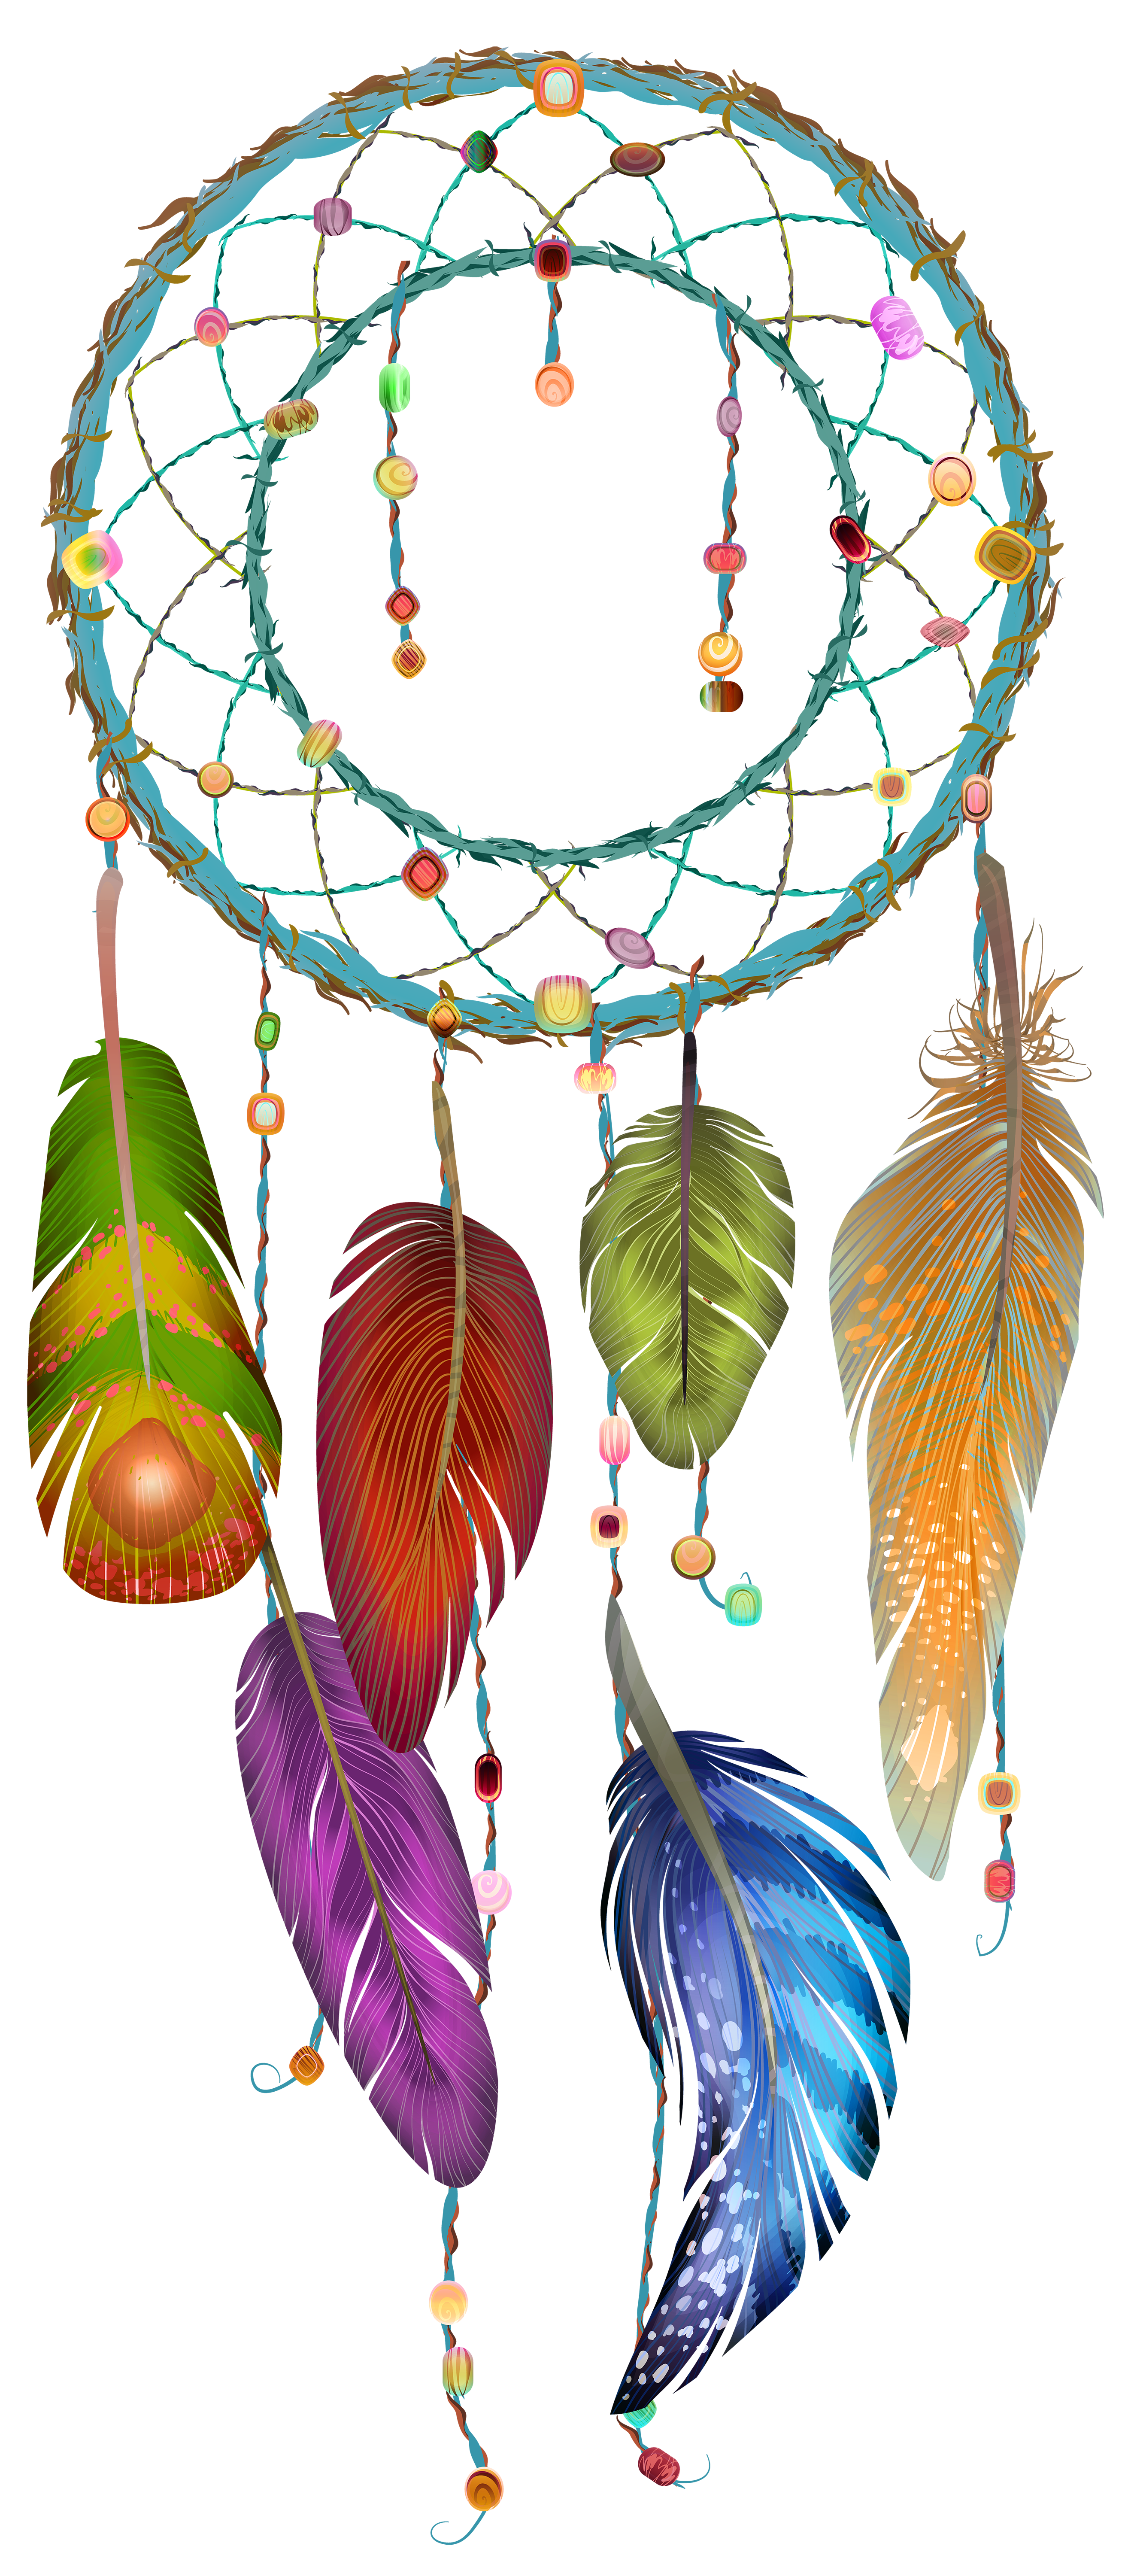 free dream catcher clipart at getdrawings com free for personal rh getdrawings com dream catchers clip art black and white boho dreamcatcher clipart